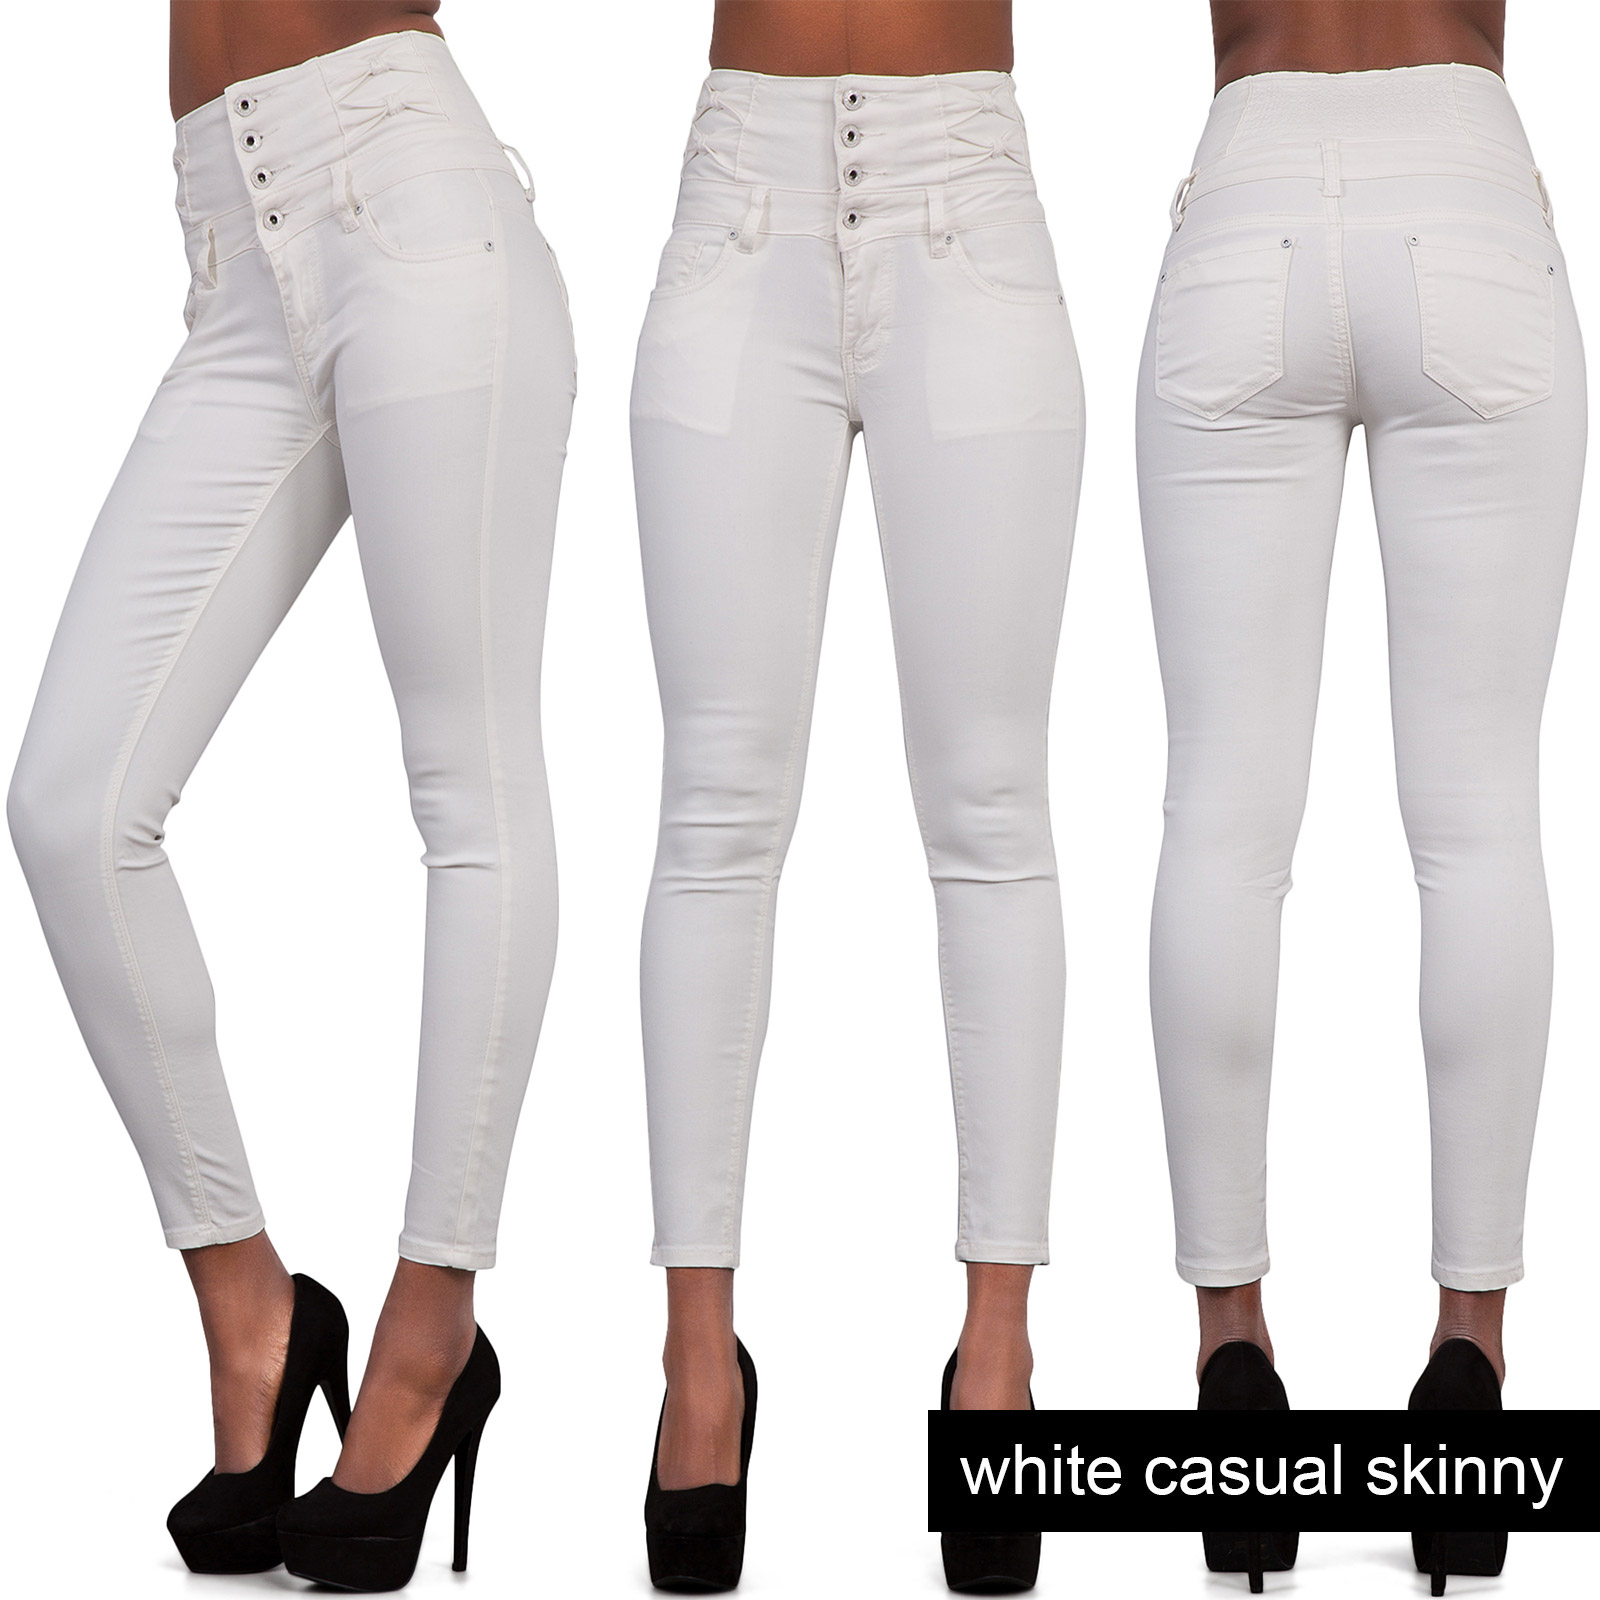 Discover high waisted and super high waisted jeans at ASOS. Shop from a range of skinny, ankle, ripped and flared high waisted jean styles from ASOS.